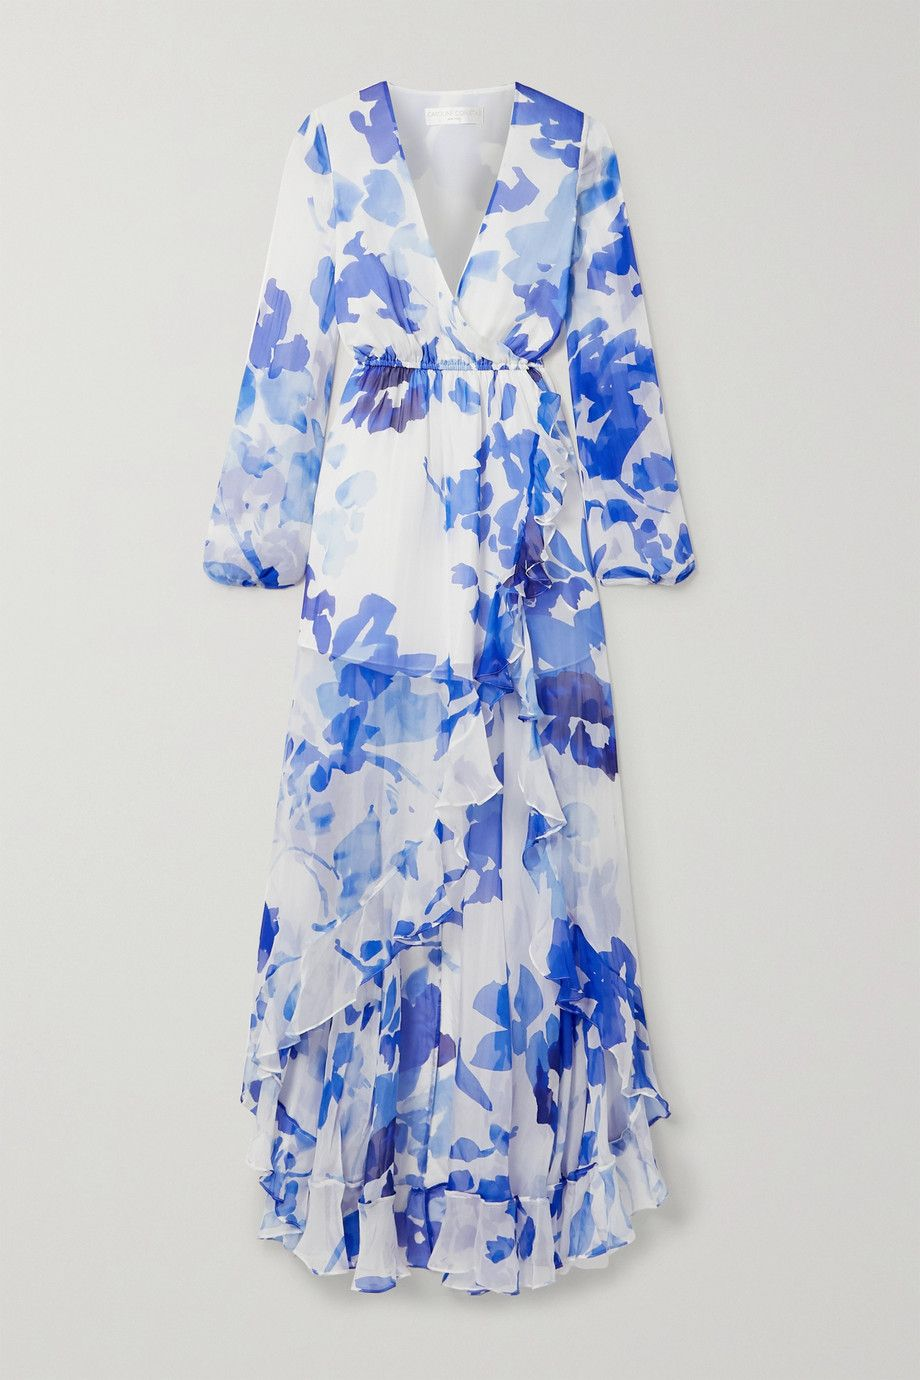 MULTI-COLOURED SHINE EFFECT FLORAL PARTY DRESS